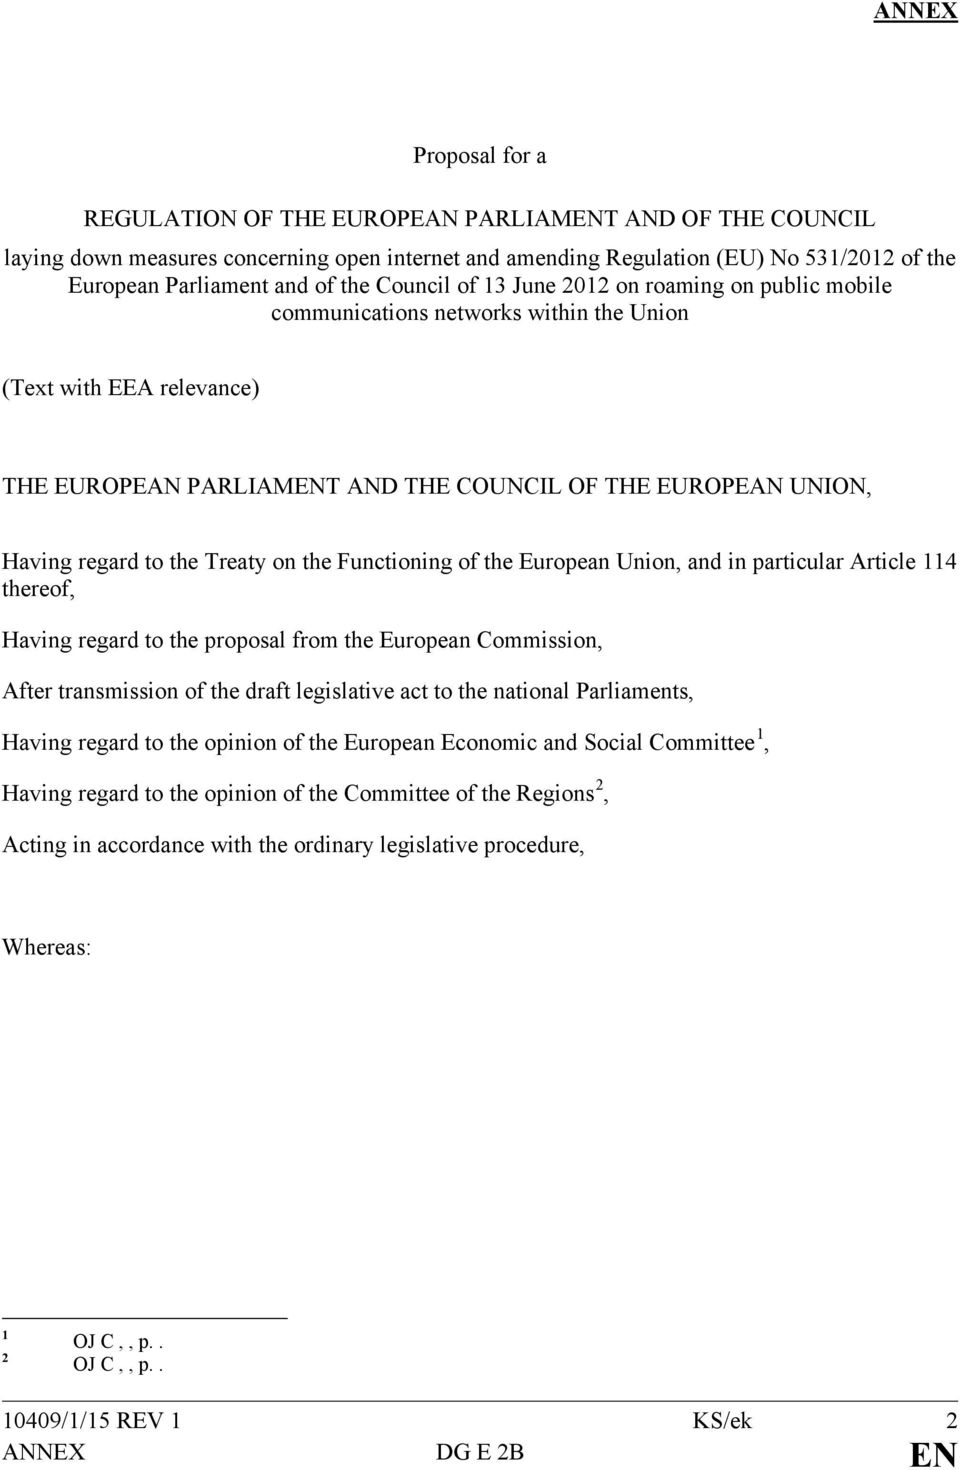 to the Treaty on the Functioning of the European Union, and in particular Article 114 thereof, Having regard to the proposal from the European Commission, After transmission of the draft legislative